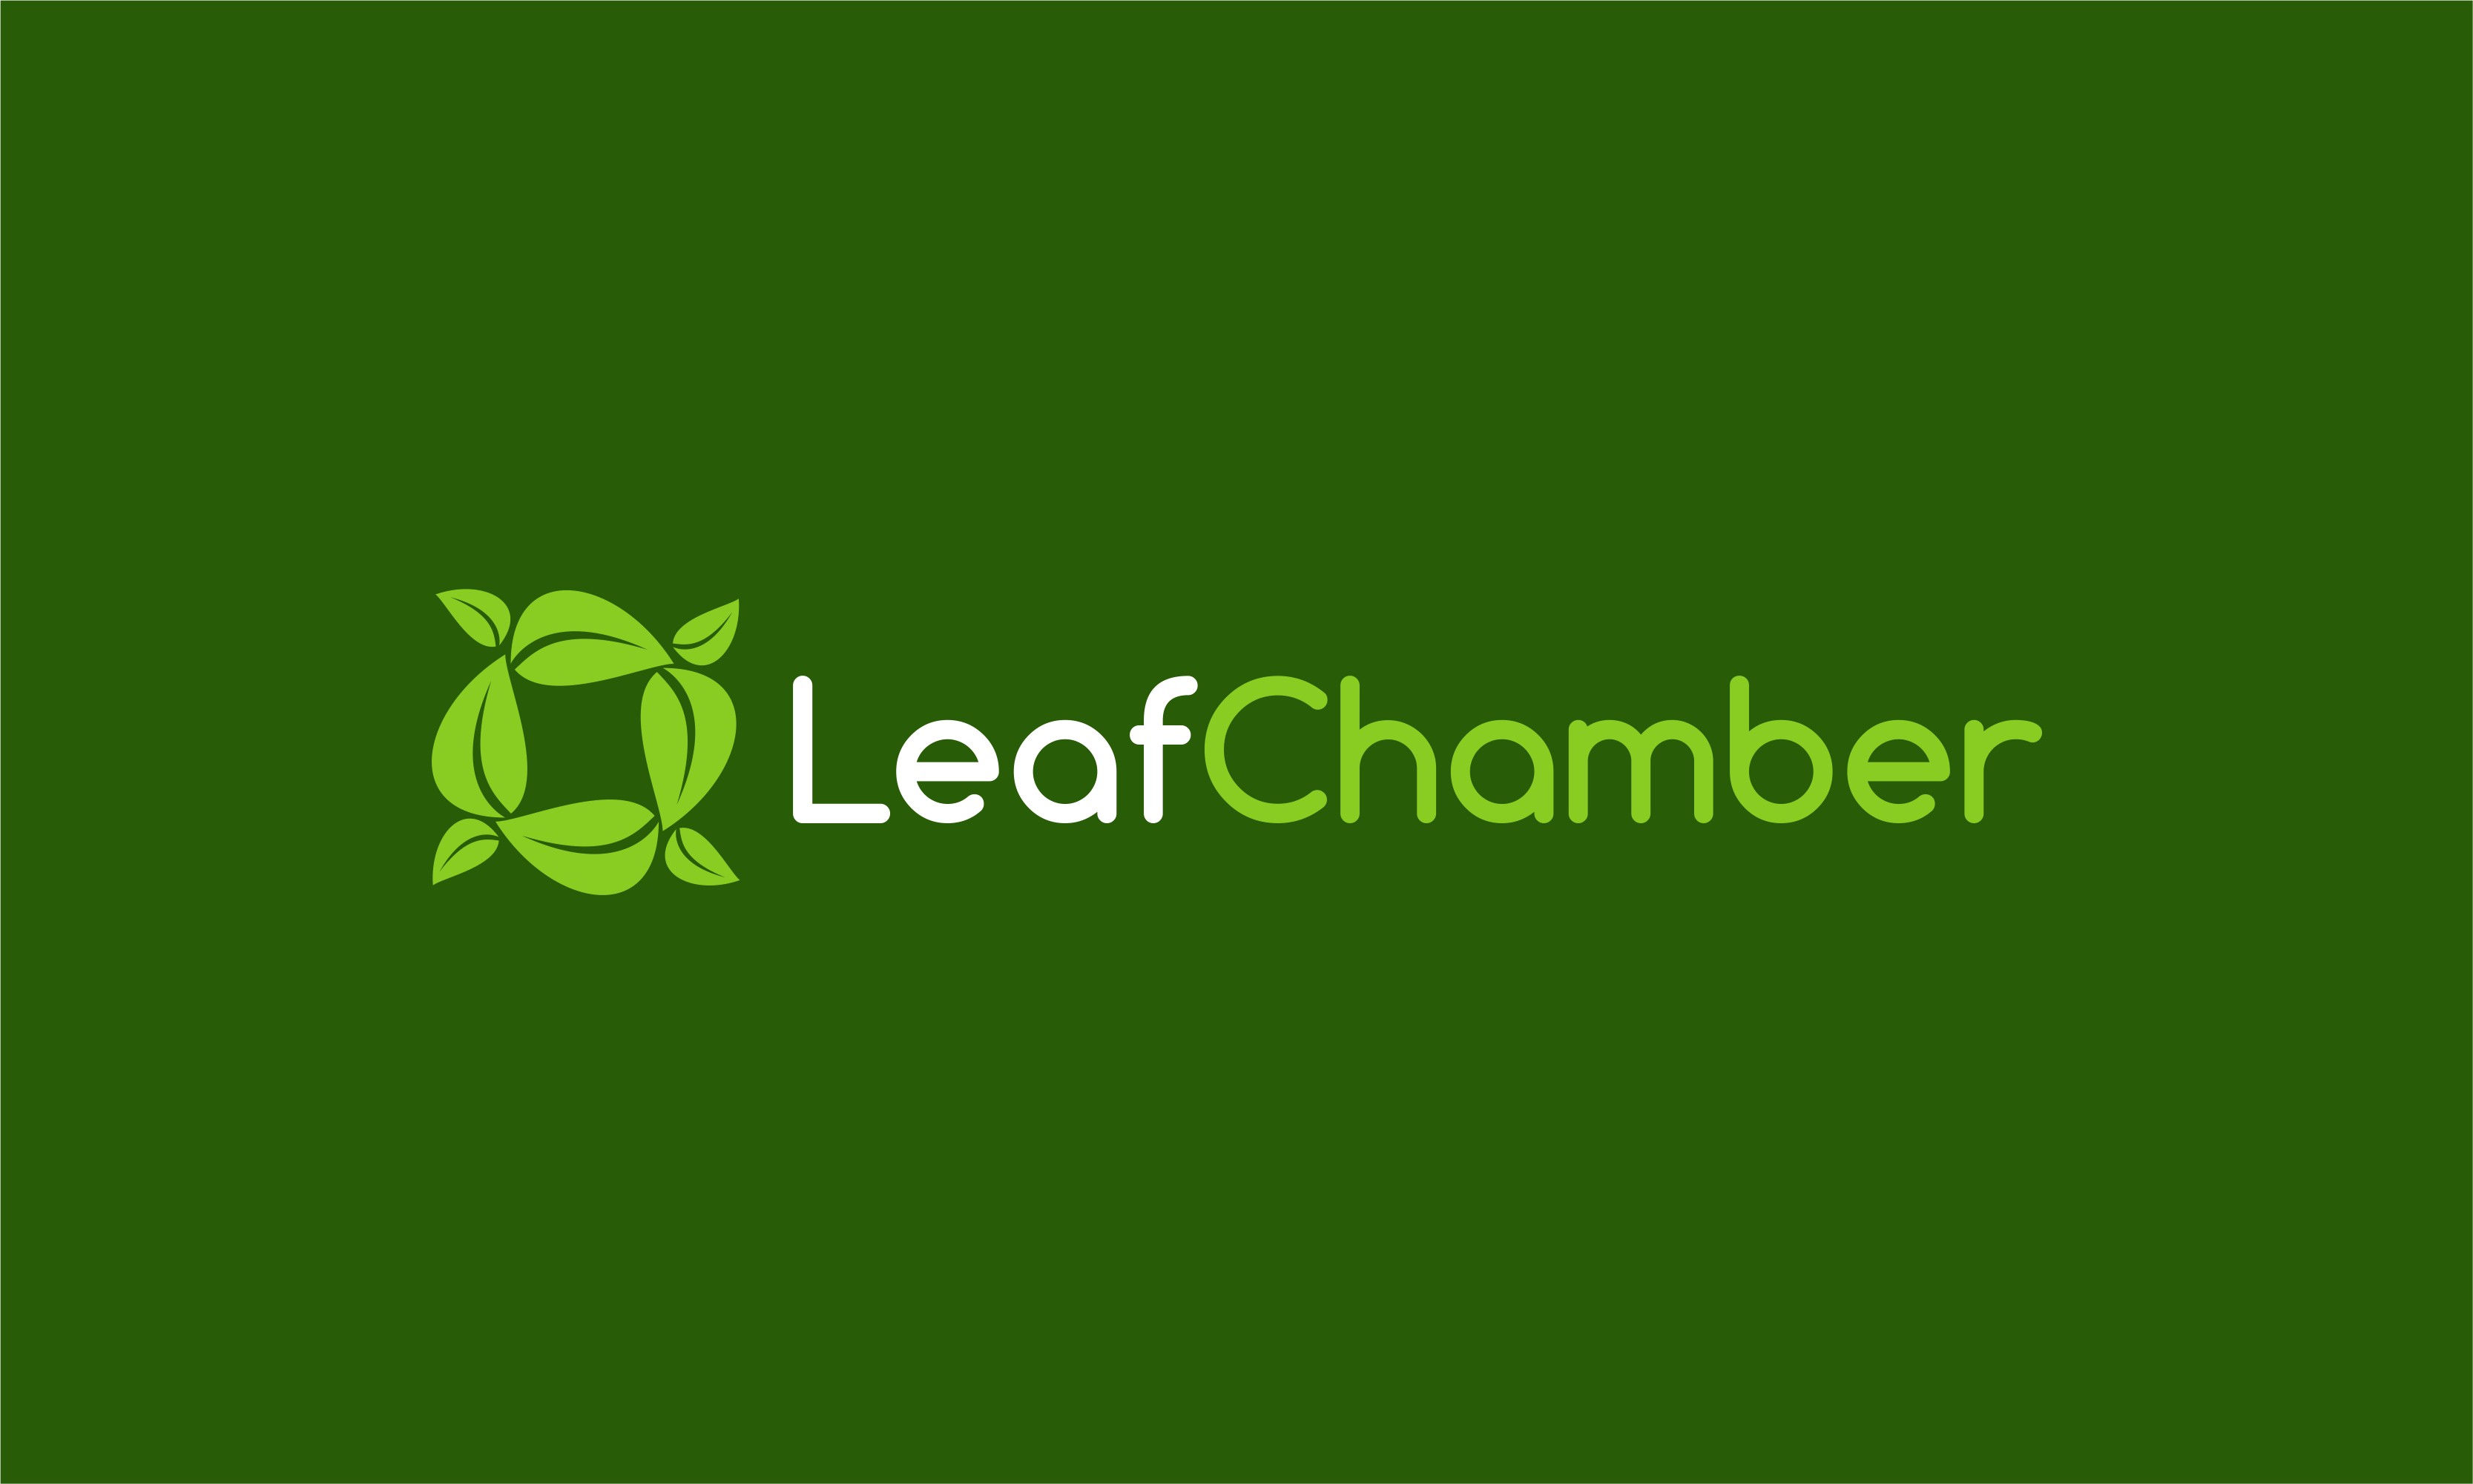 Leafchamber